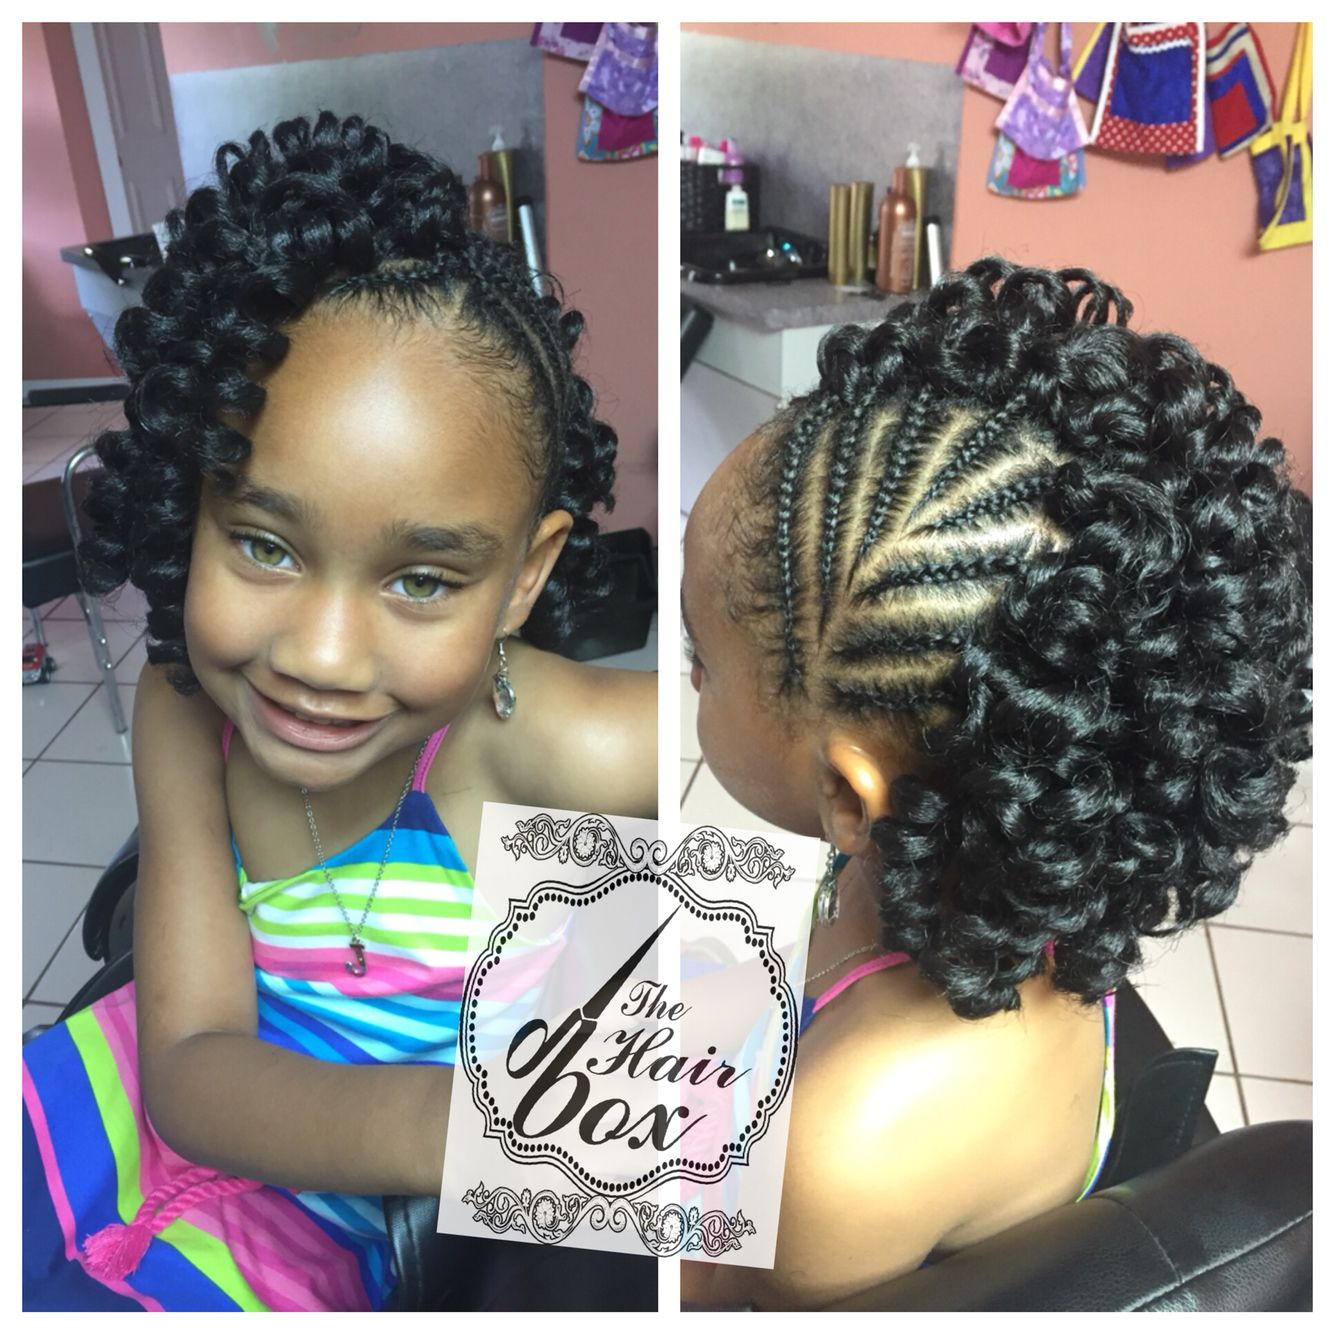 Crochet Hairstyles For Kids : about Crochet Braids For Kids on Pinterest Kids braided hairstyles ...